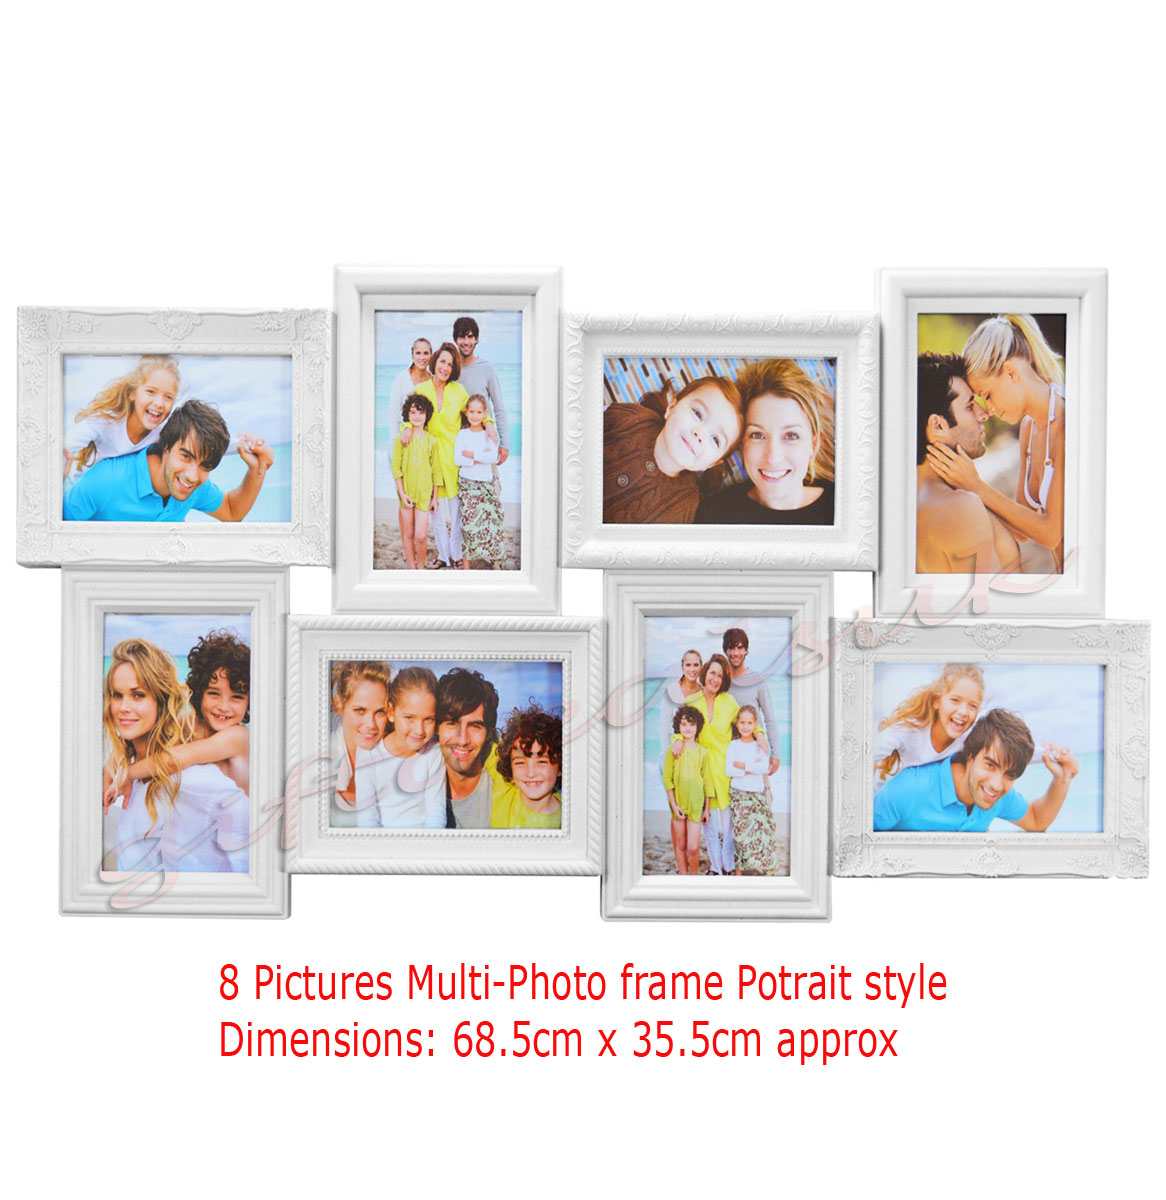 multi photo frames home decor frames picture wall set gift family love mr mrs ebay. Black Bedroom Furniture Sets. Home Design Ideas